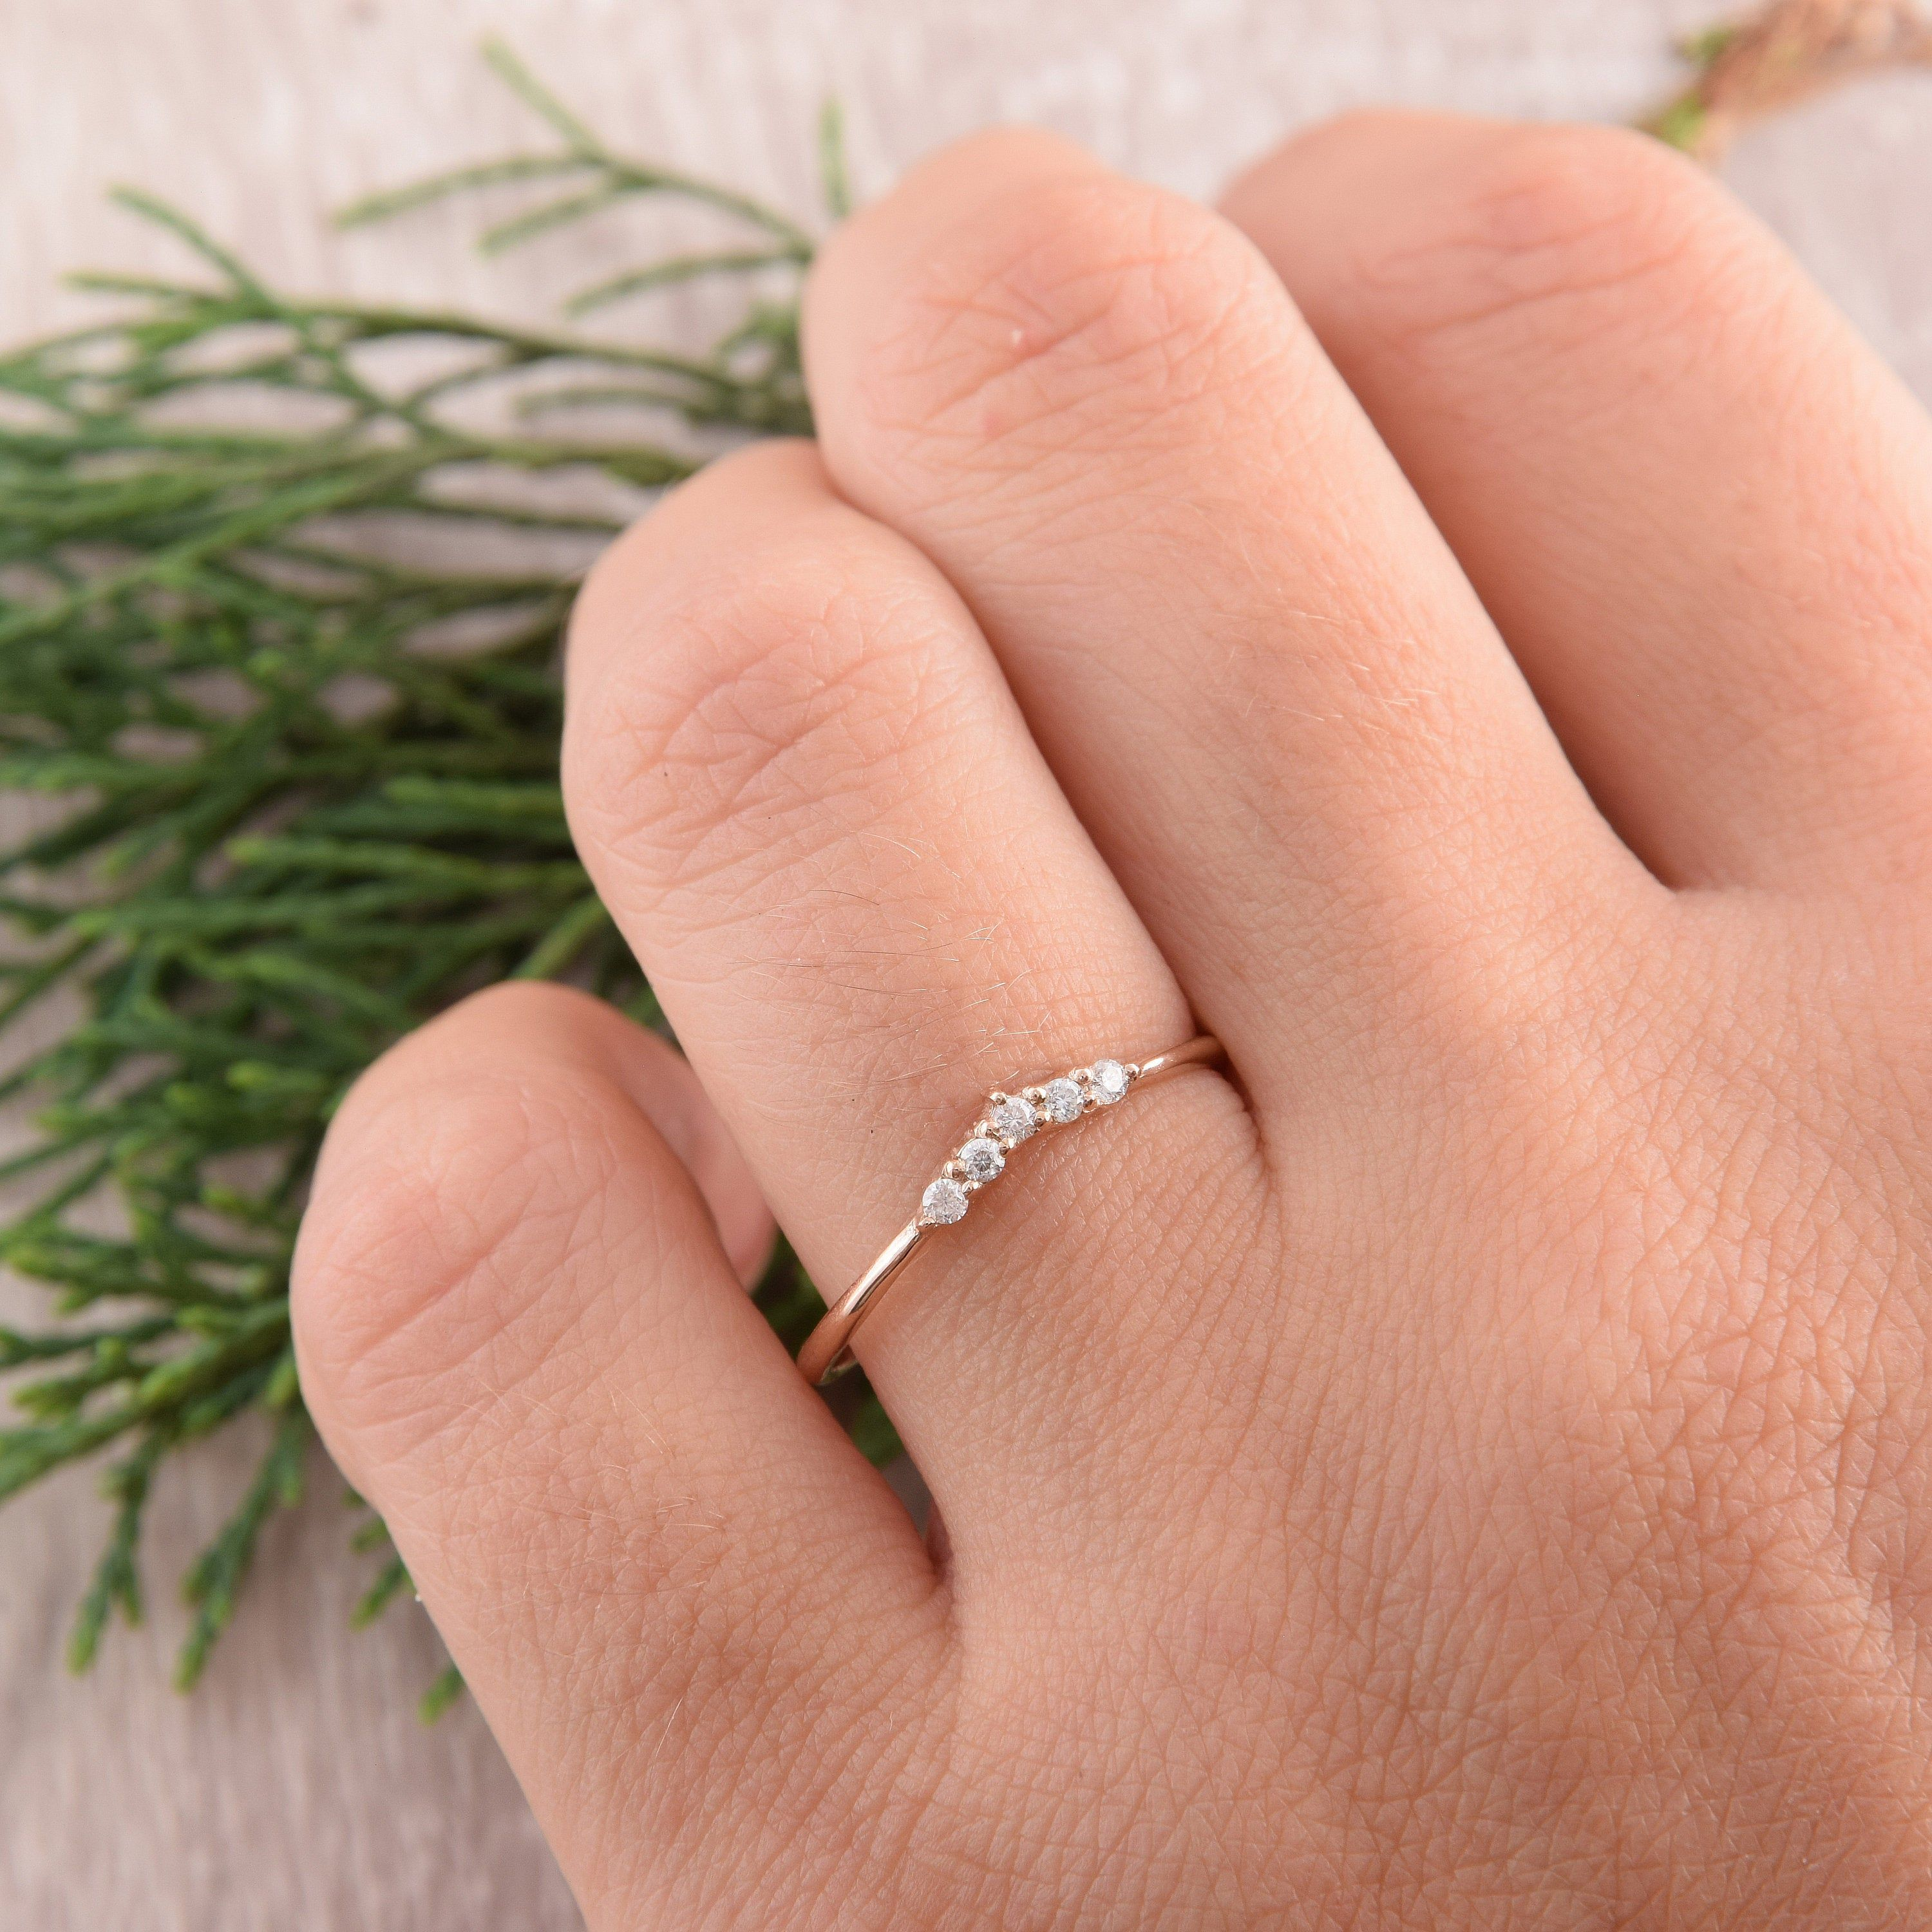 Curved Wedding Band Diamond Wedding Band Small Diamond Ring Etsy Diamond Wedding Bands Curved Wedding Band Small Diamond Rings